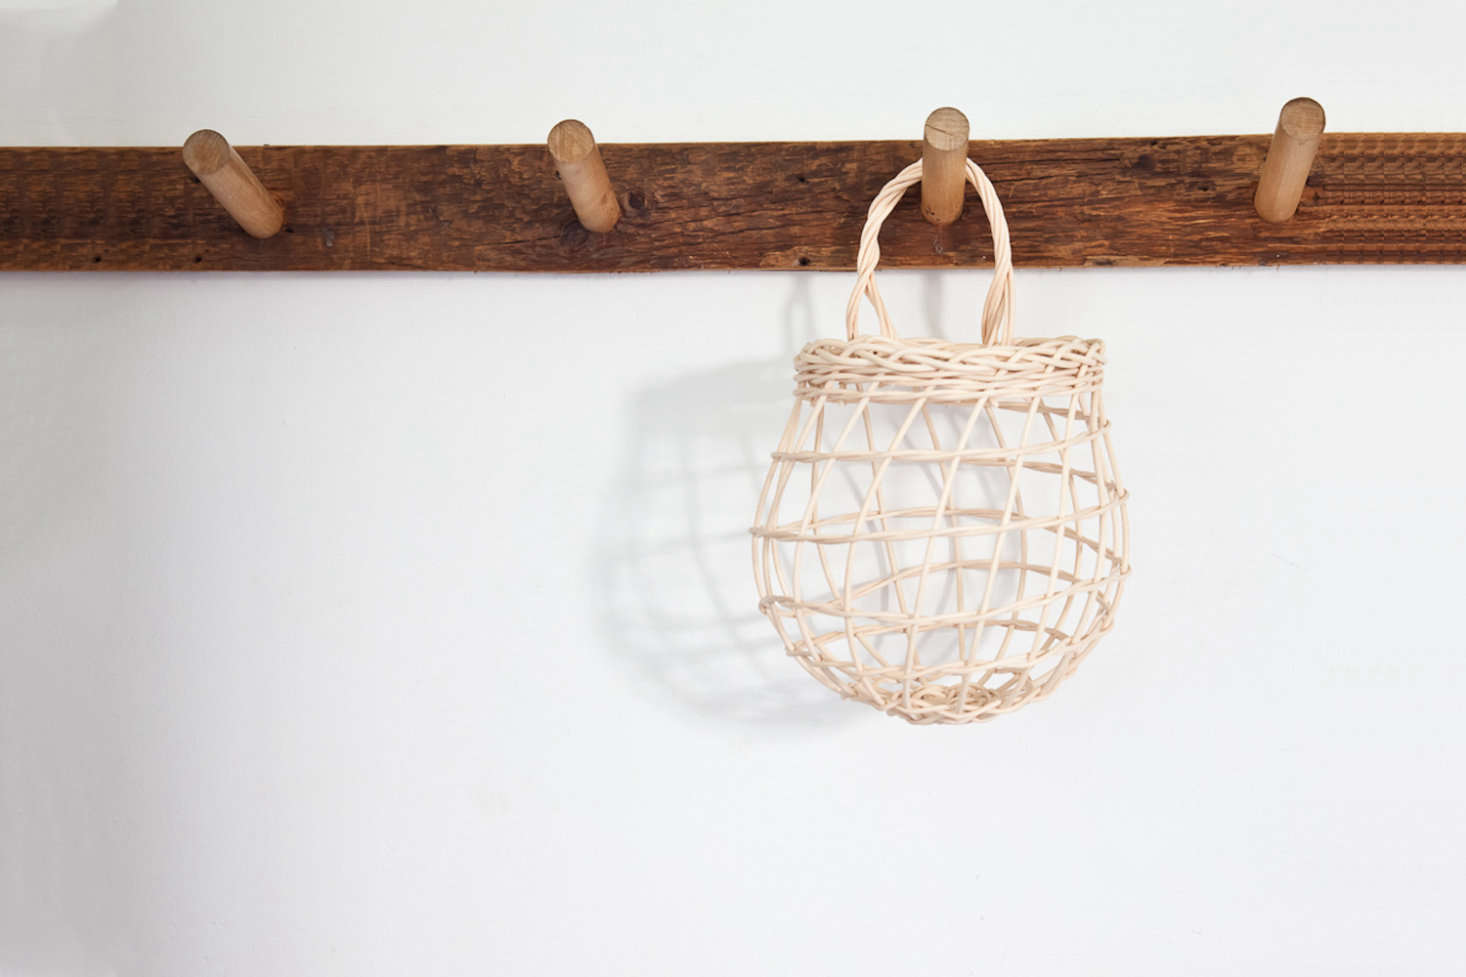 Handmade in Maine, the small Onion Basket is $32 from Sugar Tools.